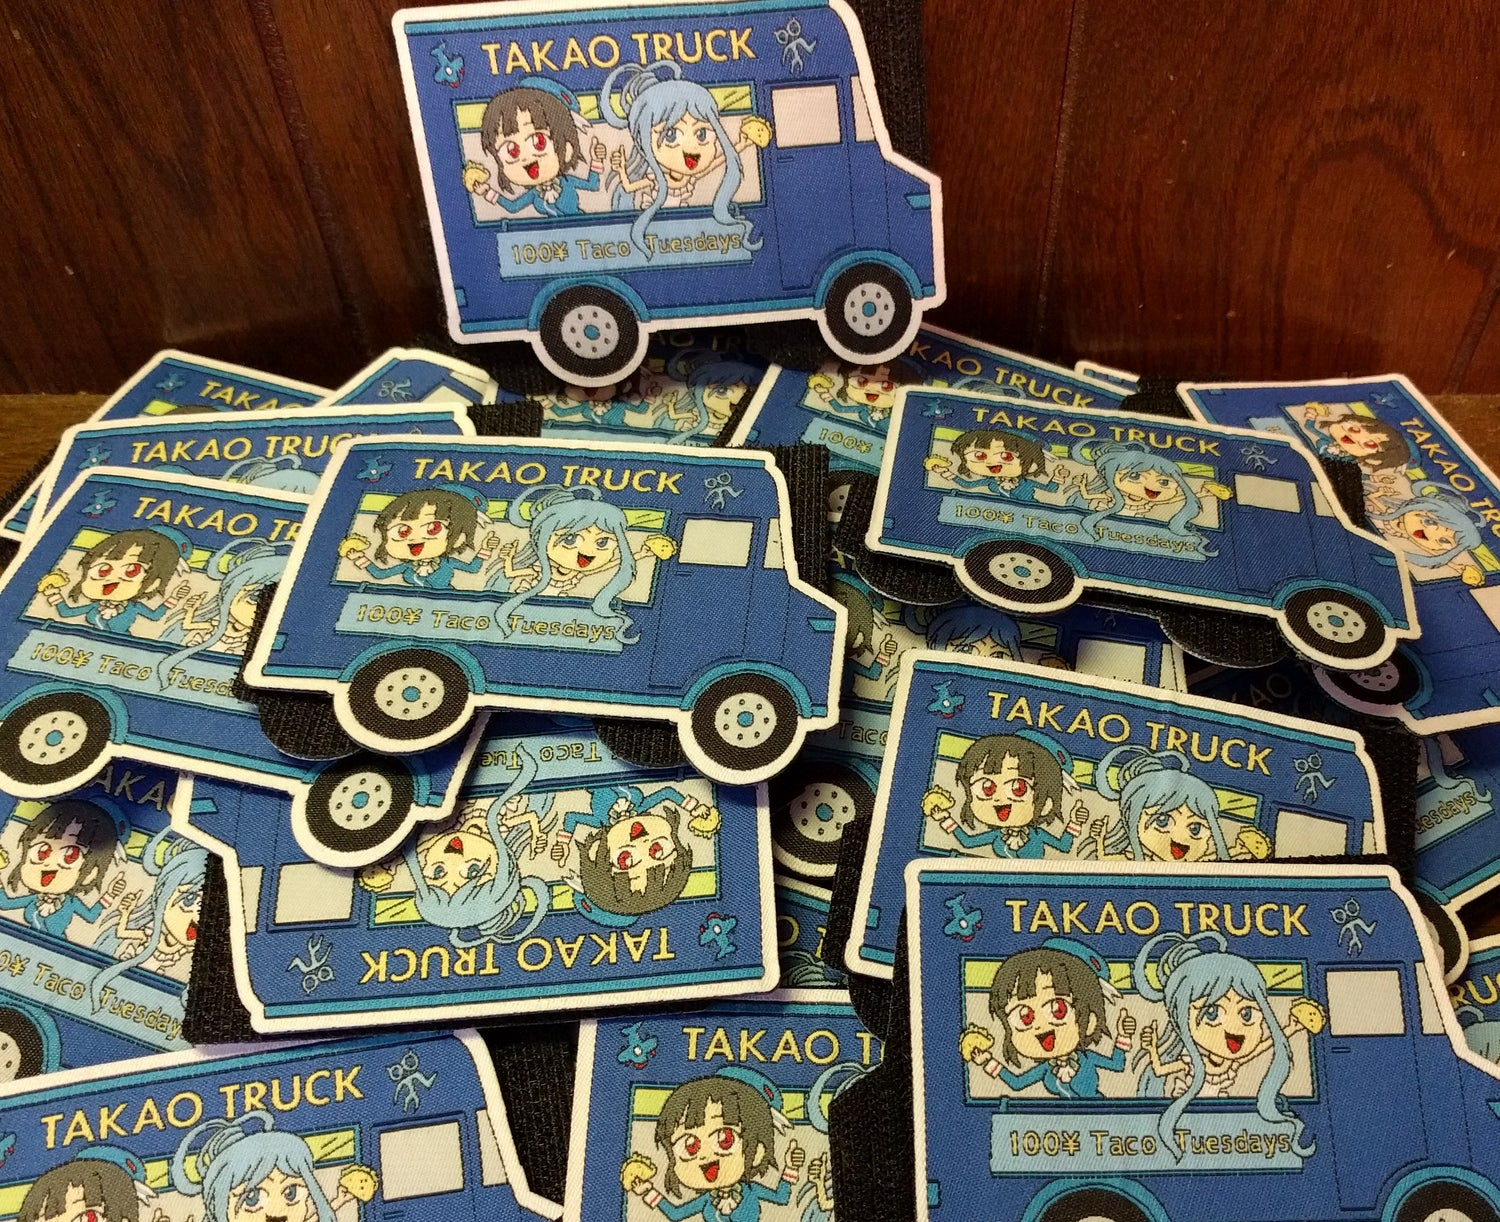 Takao Truck (Blue variant)